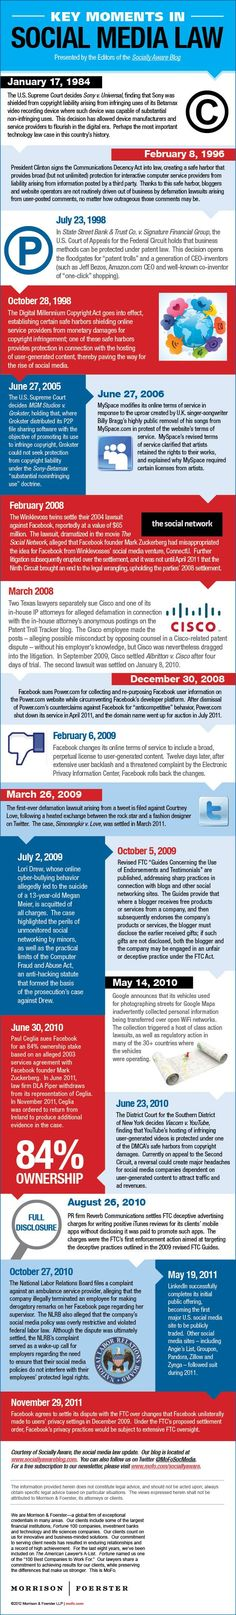 [INFOGRAPHIC] Important, meaningful landmarks in social media history.